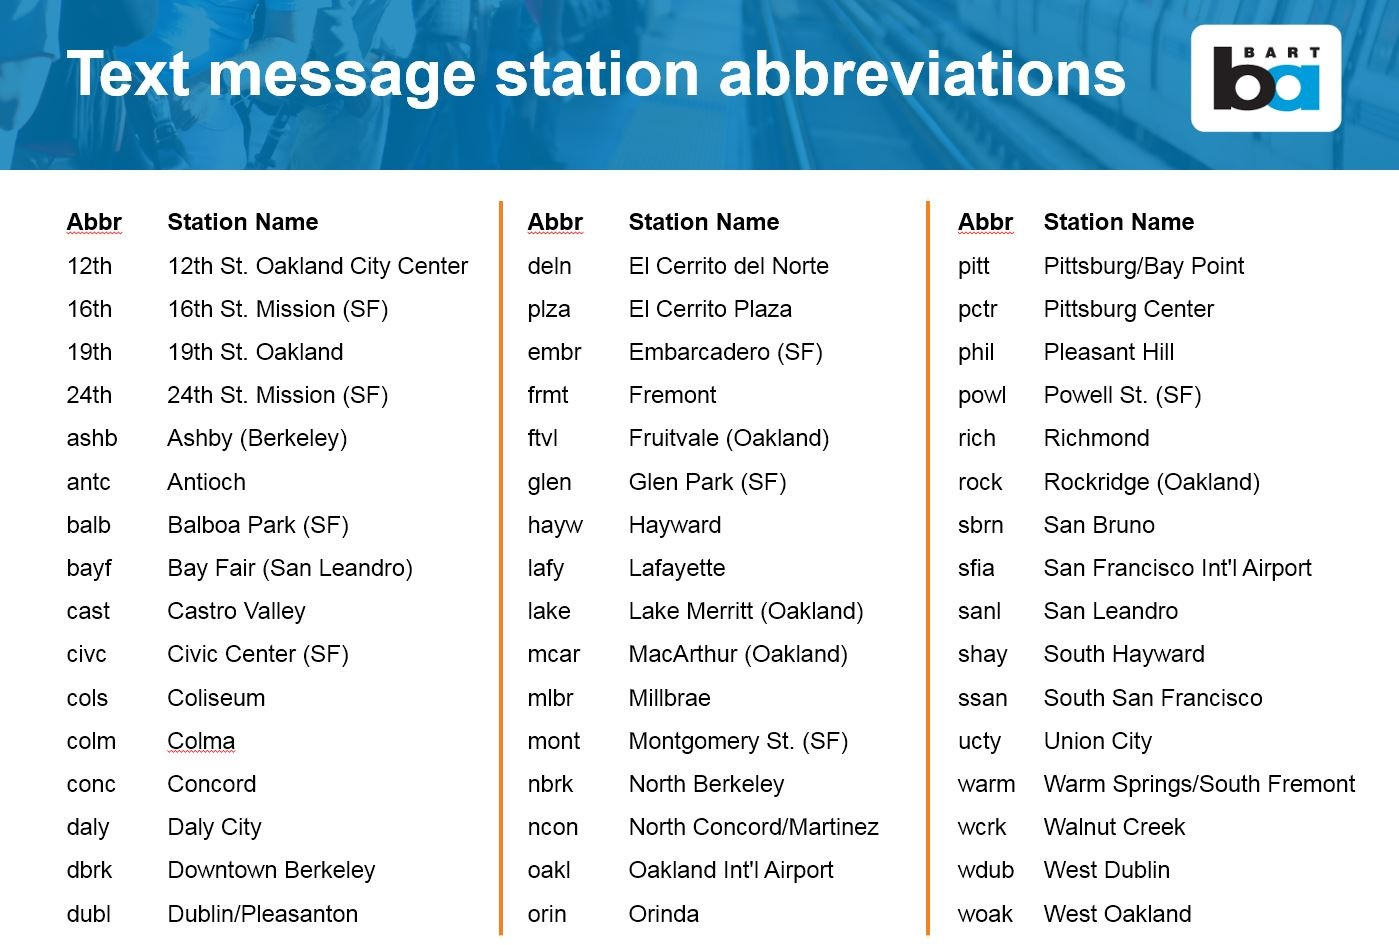 Text message station abbreviations list